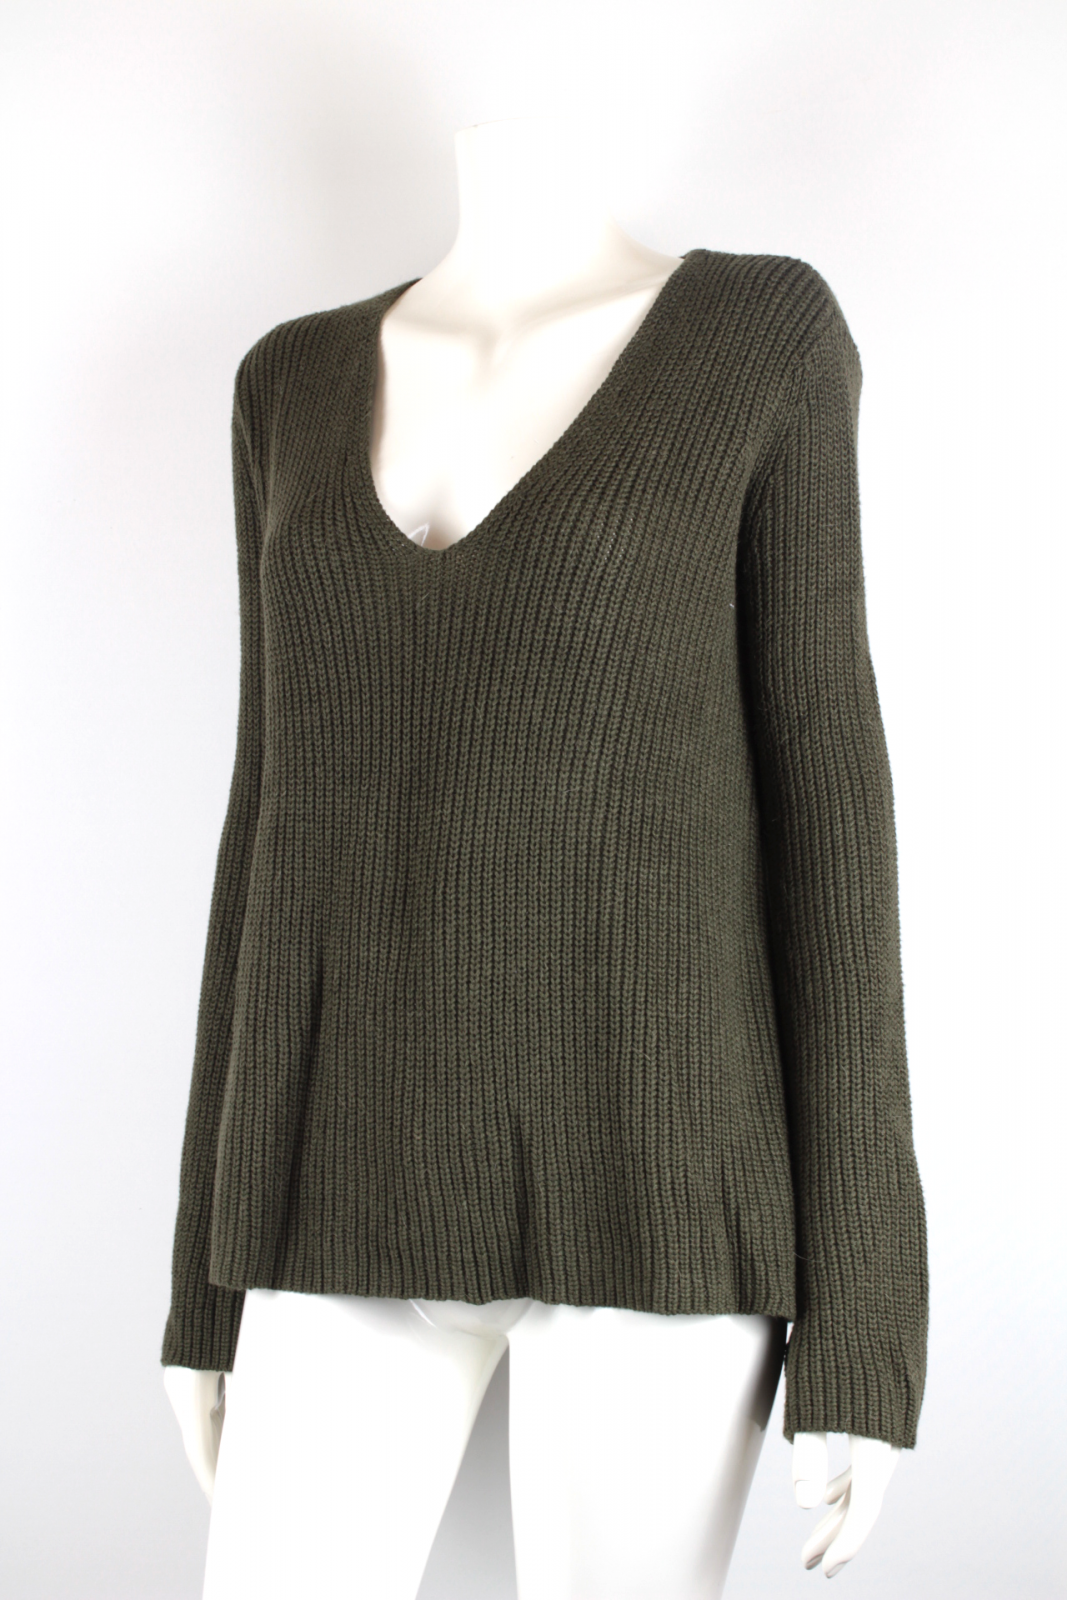 Second-hand Clothing - Women, Jumpers & Cardigans